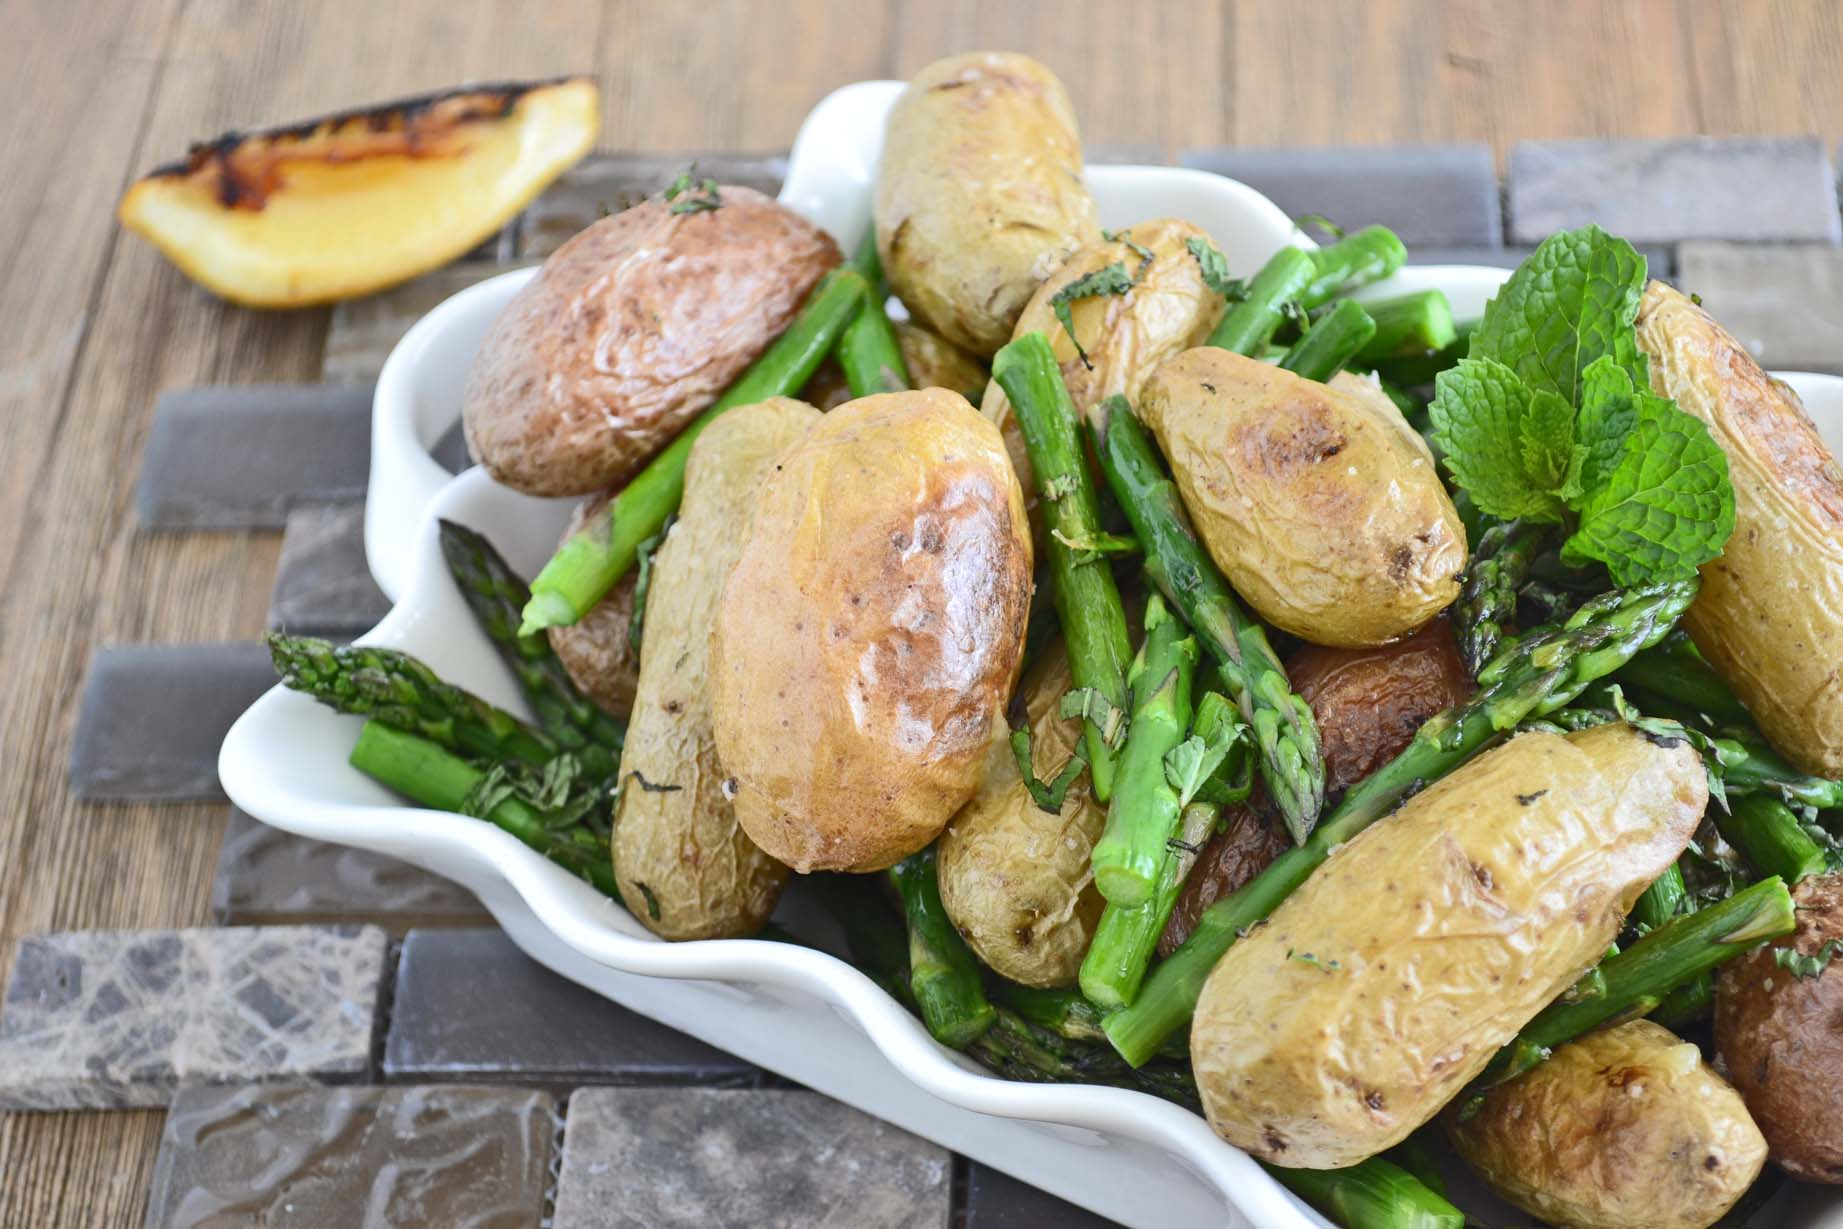 Roasted asparagus and potatoes with lemon and mint